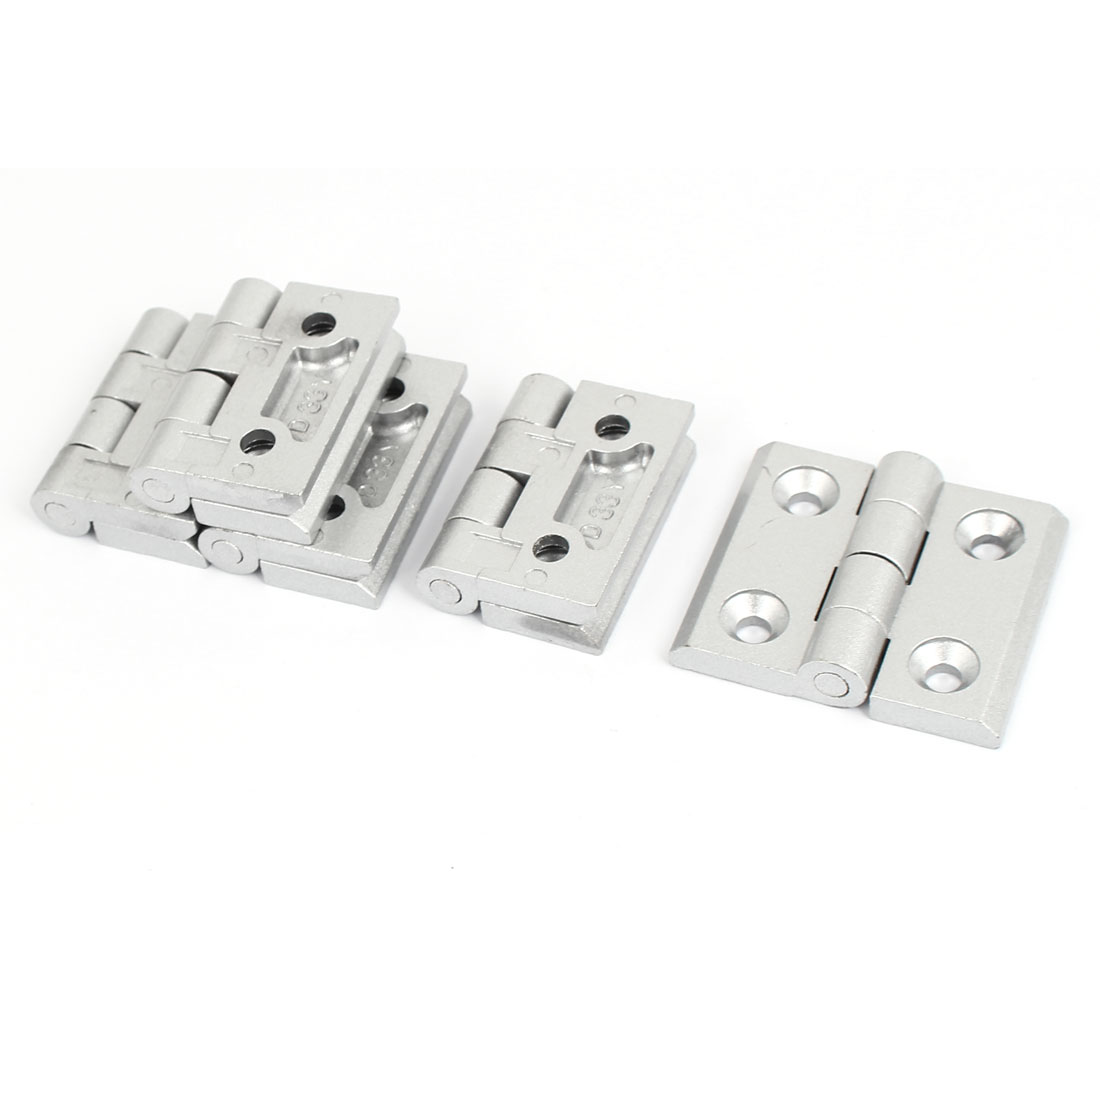 6mm Hole Dia Rectangle Ball Bearing Reinforced Butt Hinge Silver Tone 5 Pcs